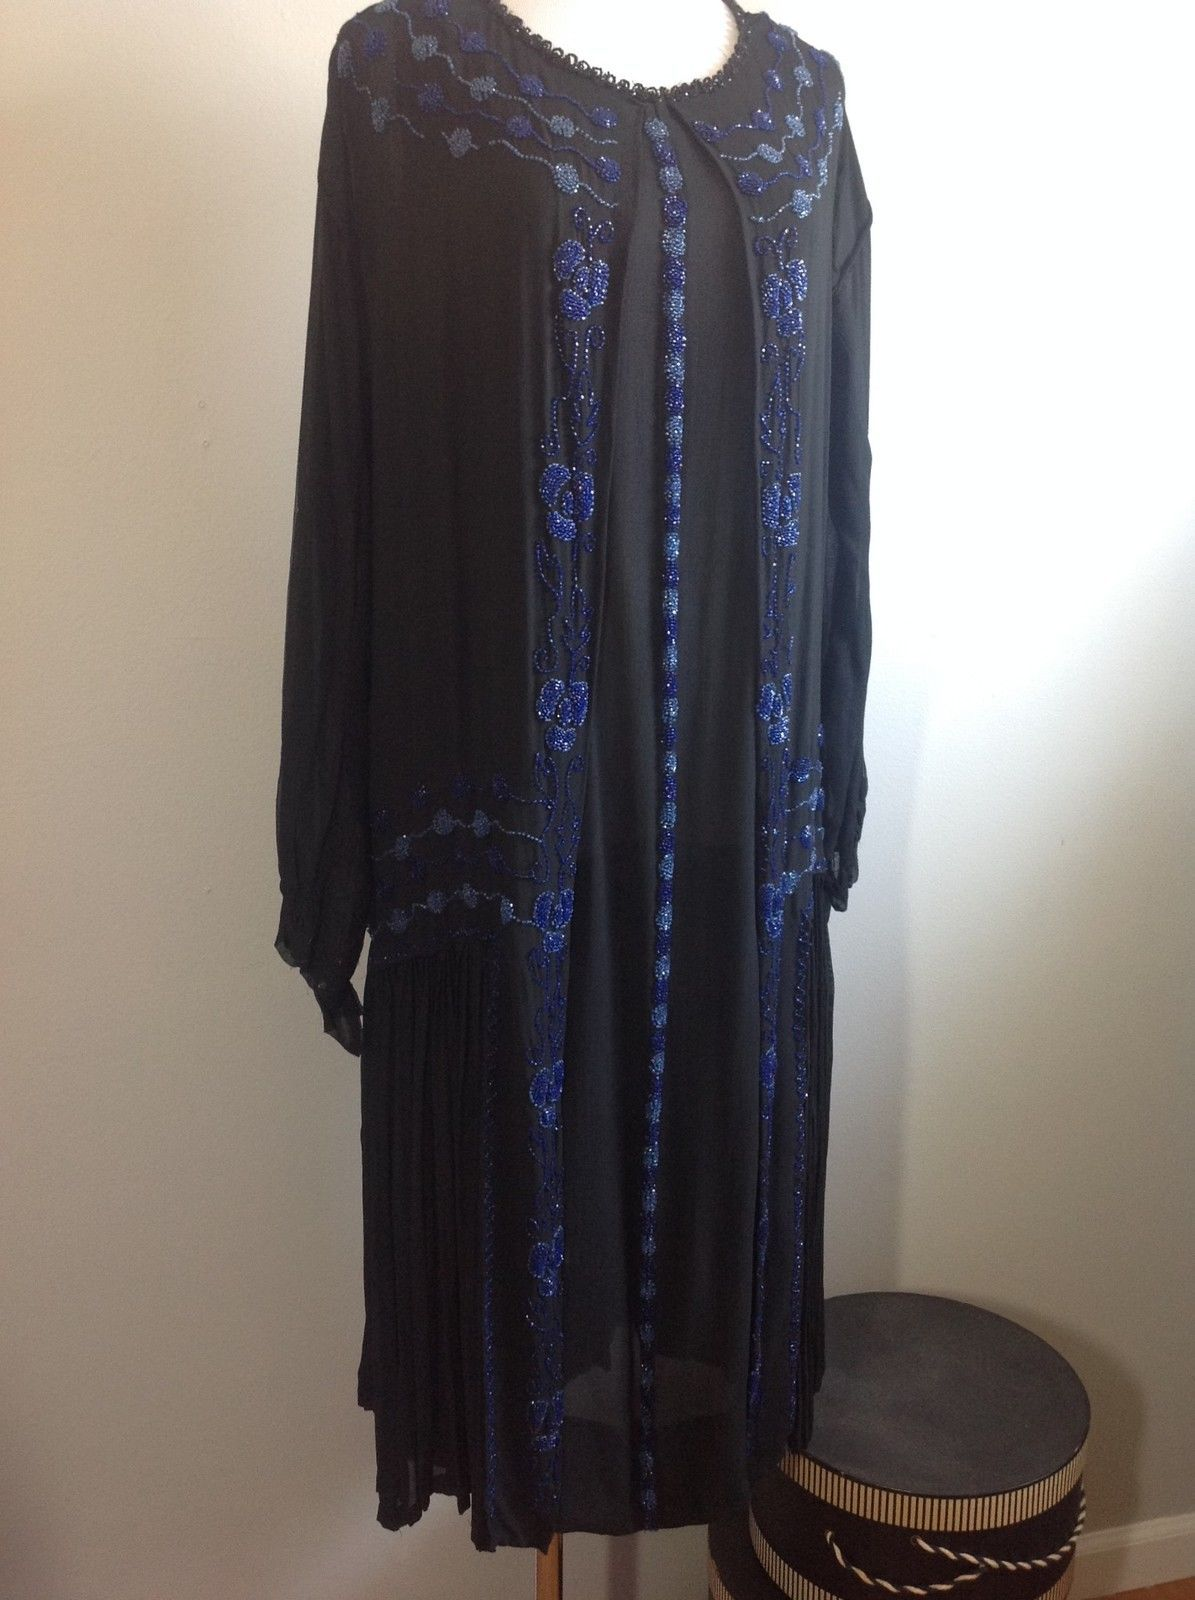 1920s Beaded Silk Flapper Dress Blue Floral Art Deco.  Beaded in light and dark blue glass beads with a pansy design.  The beading flaps at the front and back as well as the pleated bottom are separate from the under dress and swing when moving. Front